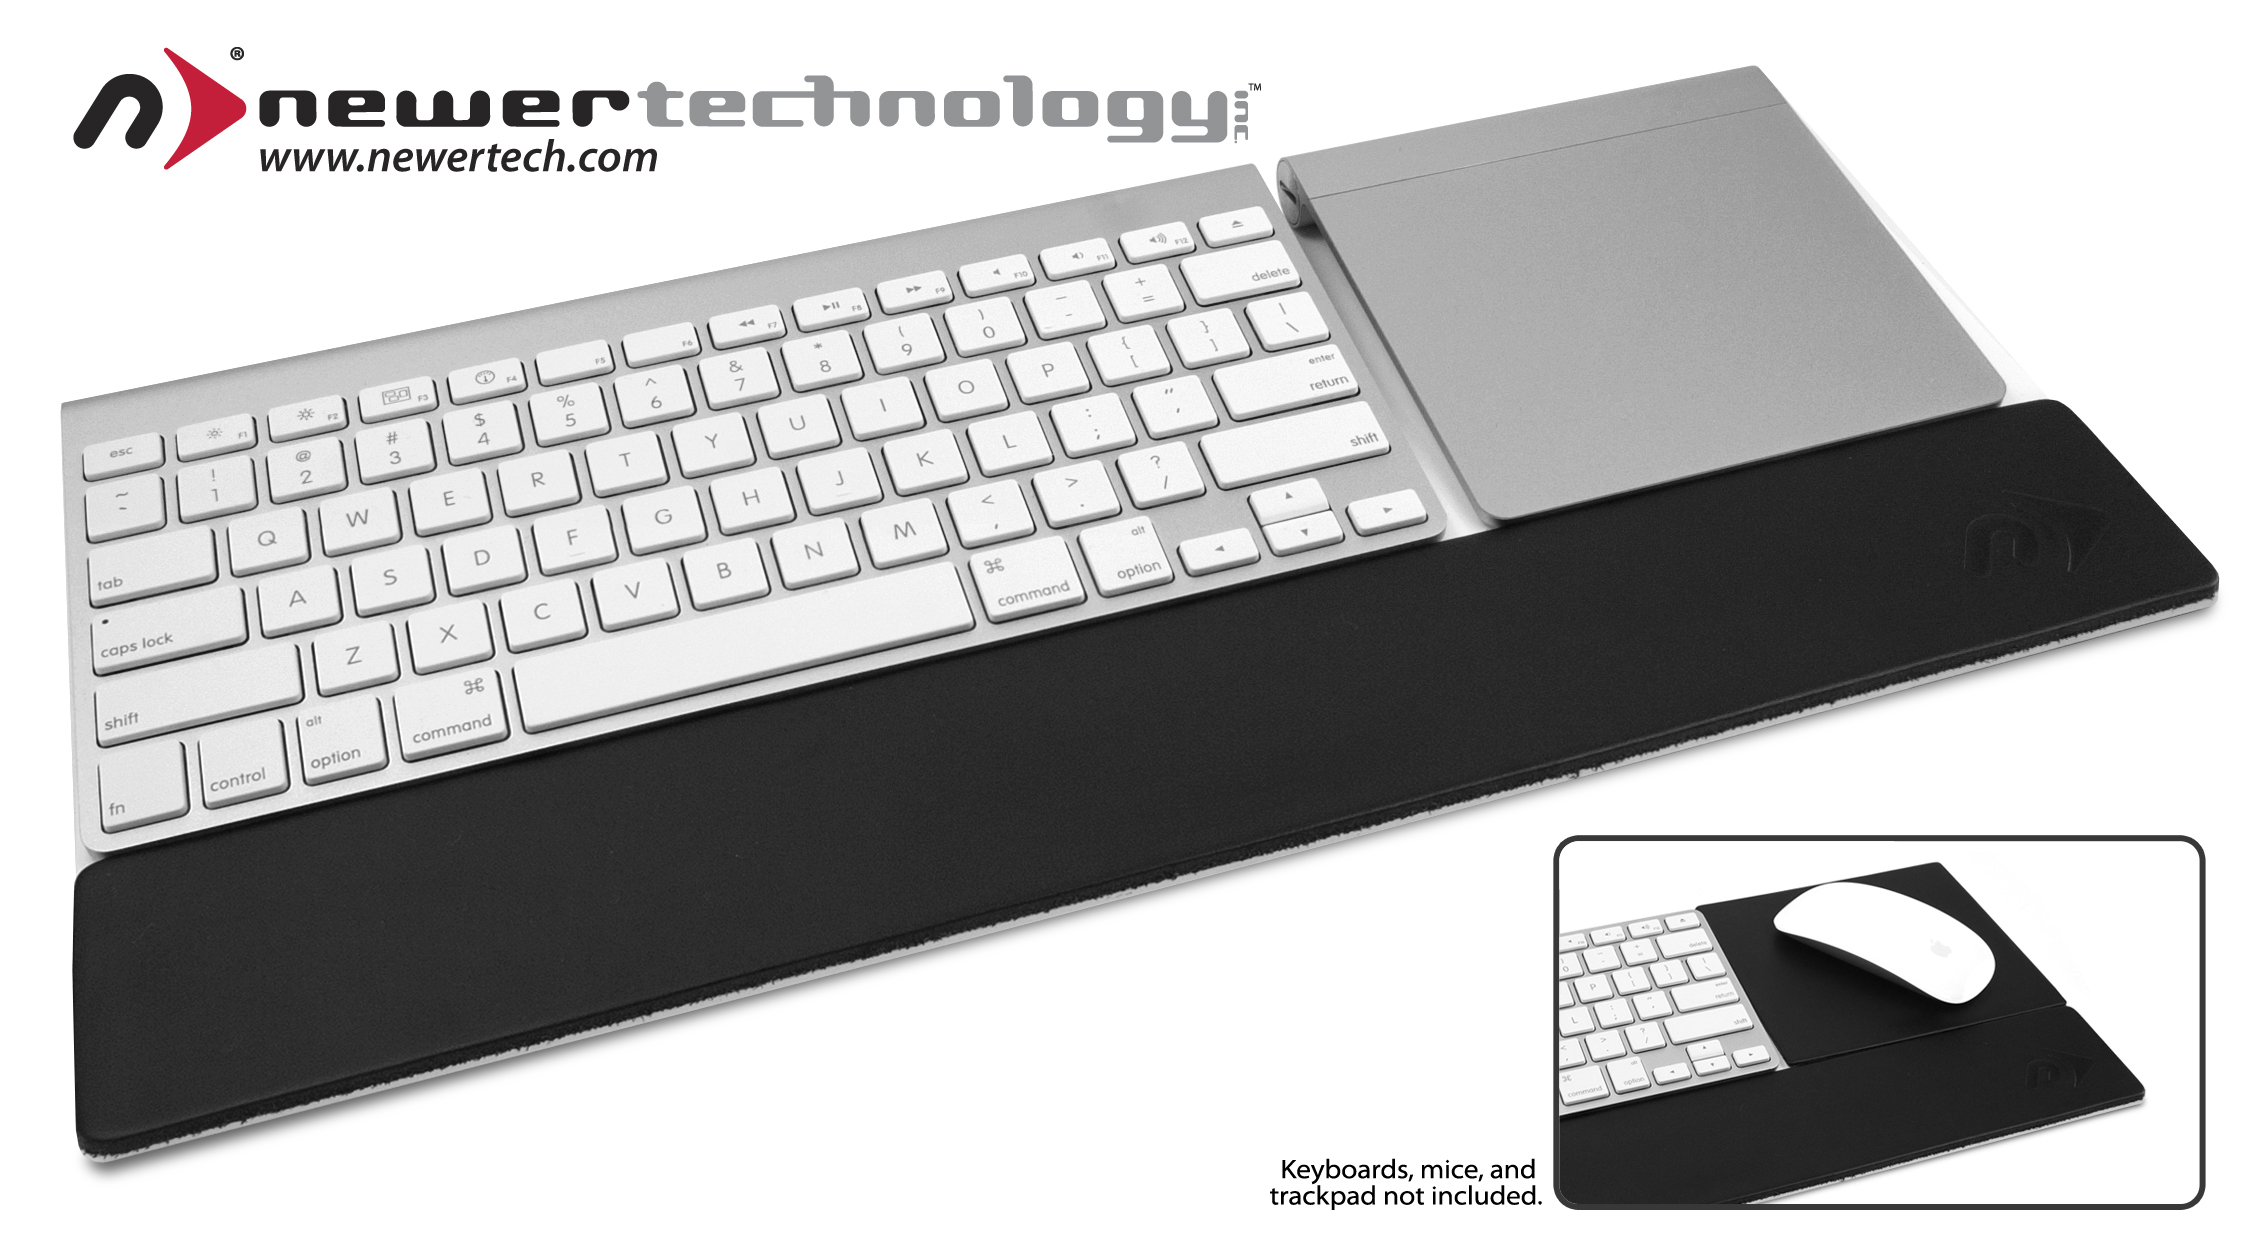 ba0ea1b226a $49.95 MSRP non-slip acrylic tray with padded leather wrist rest transforms  the chaos of multiple Apple input devices into one organized and efficient  work ...